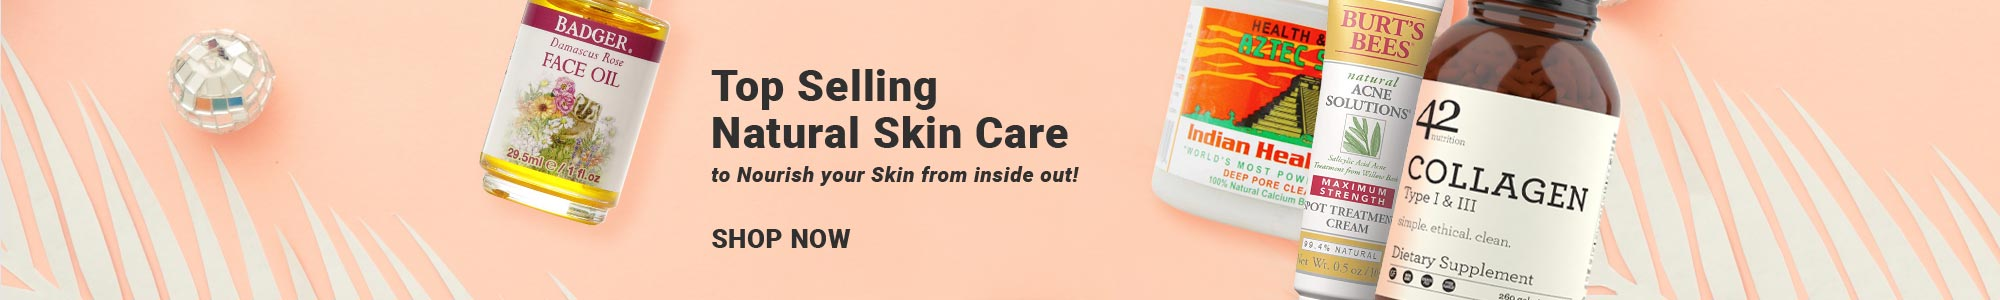 Top Selling Natural Skin Care to Nourish your Skin from inside out! SHOP NOW